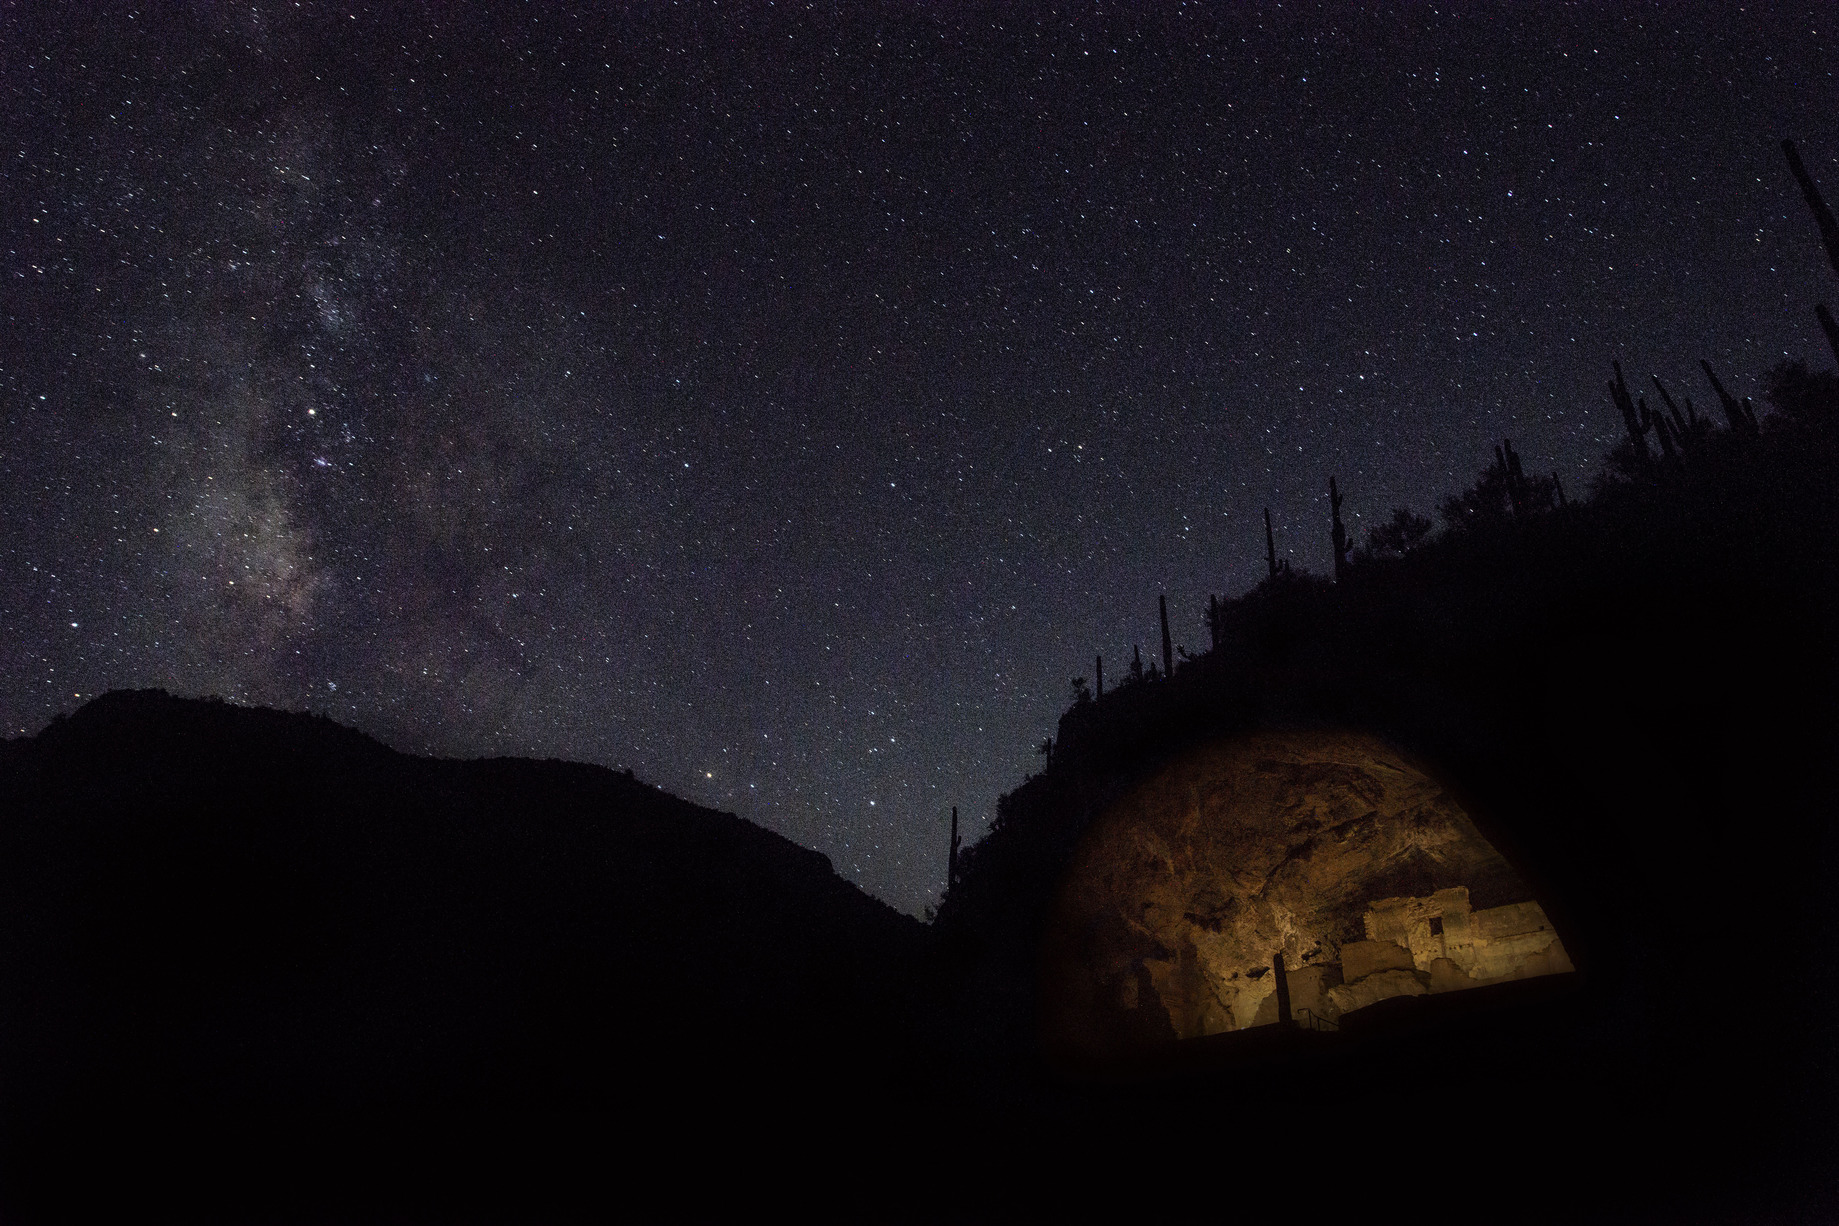 Tonto National Monument at night